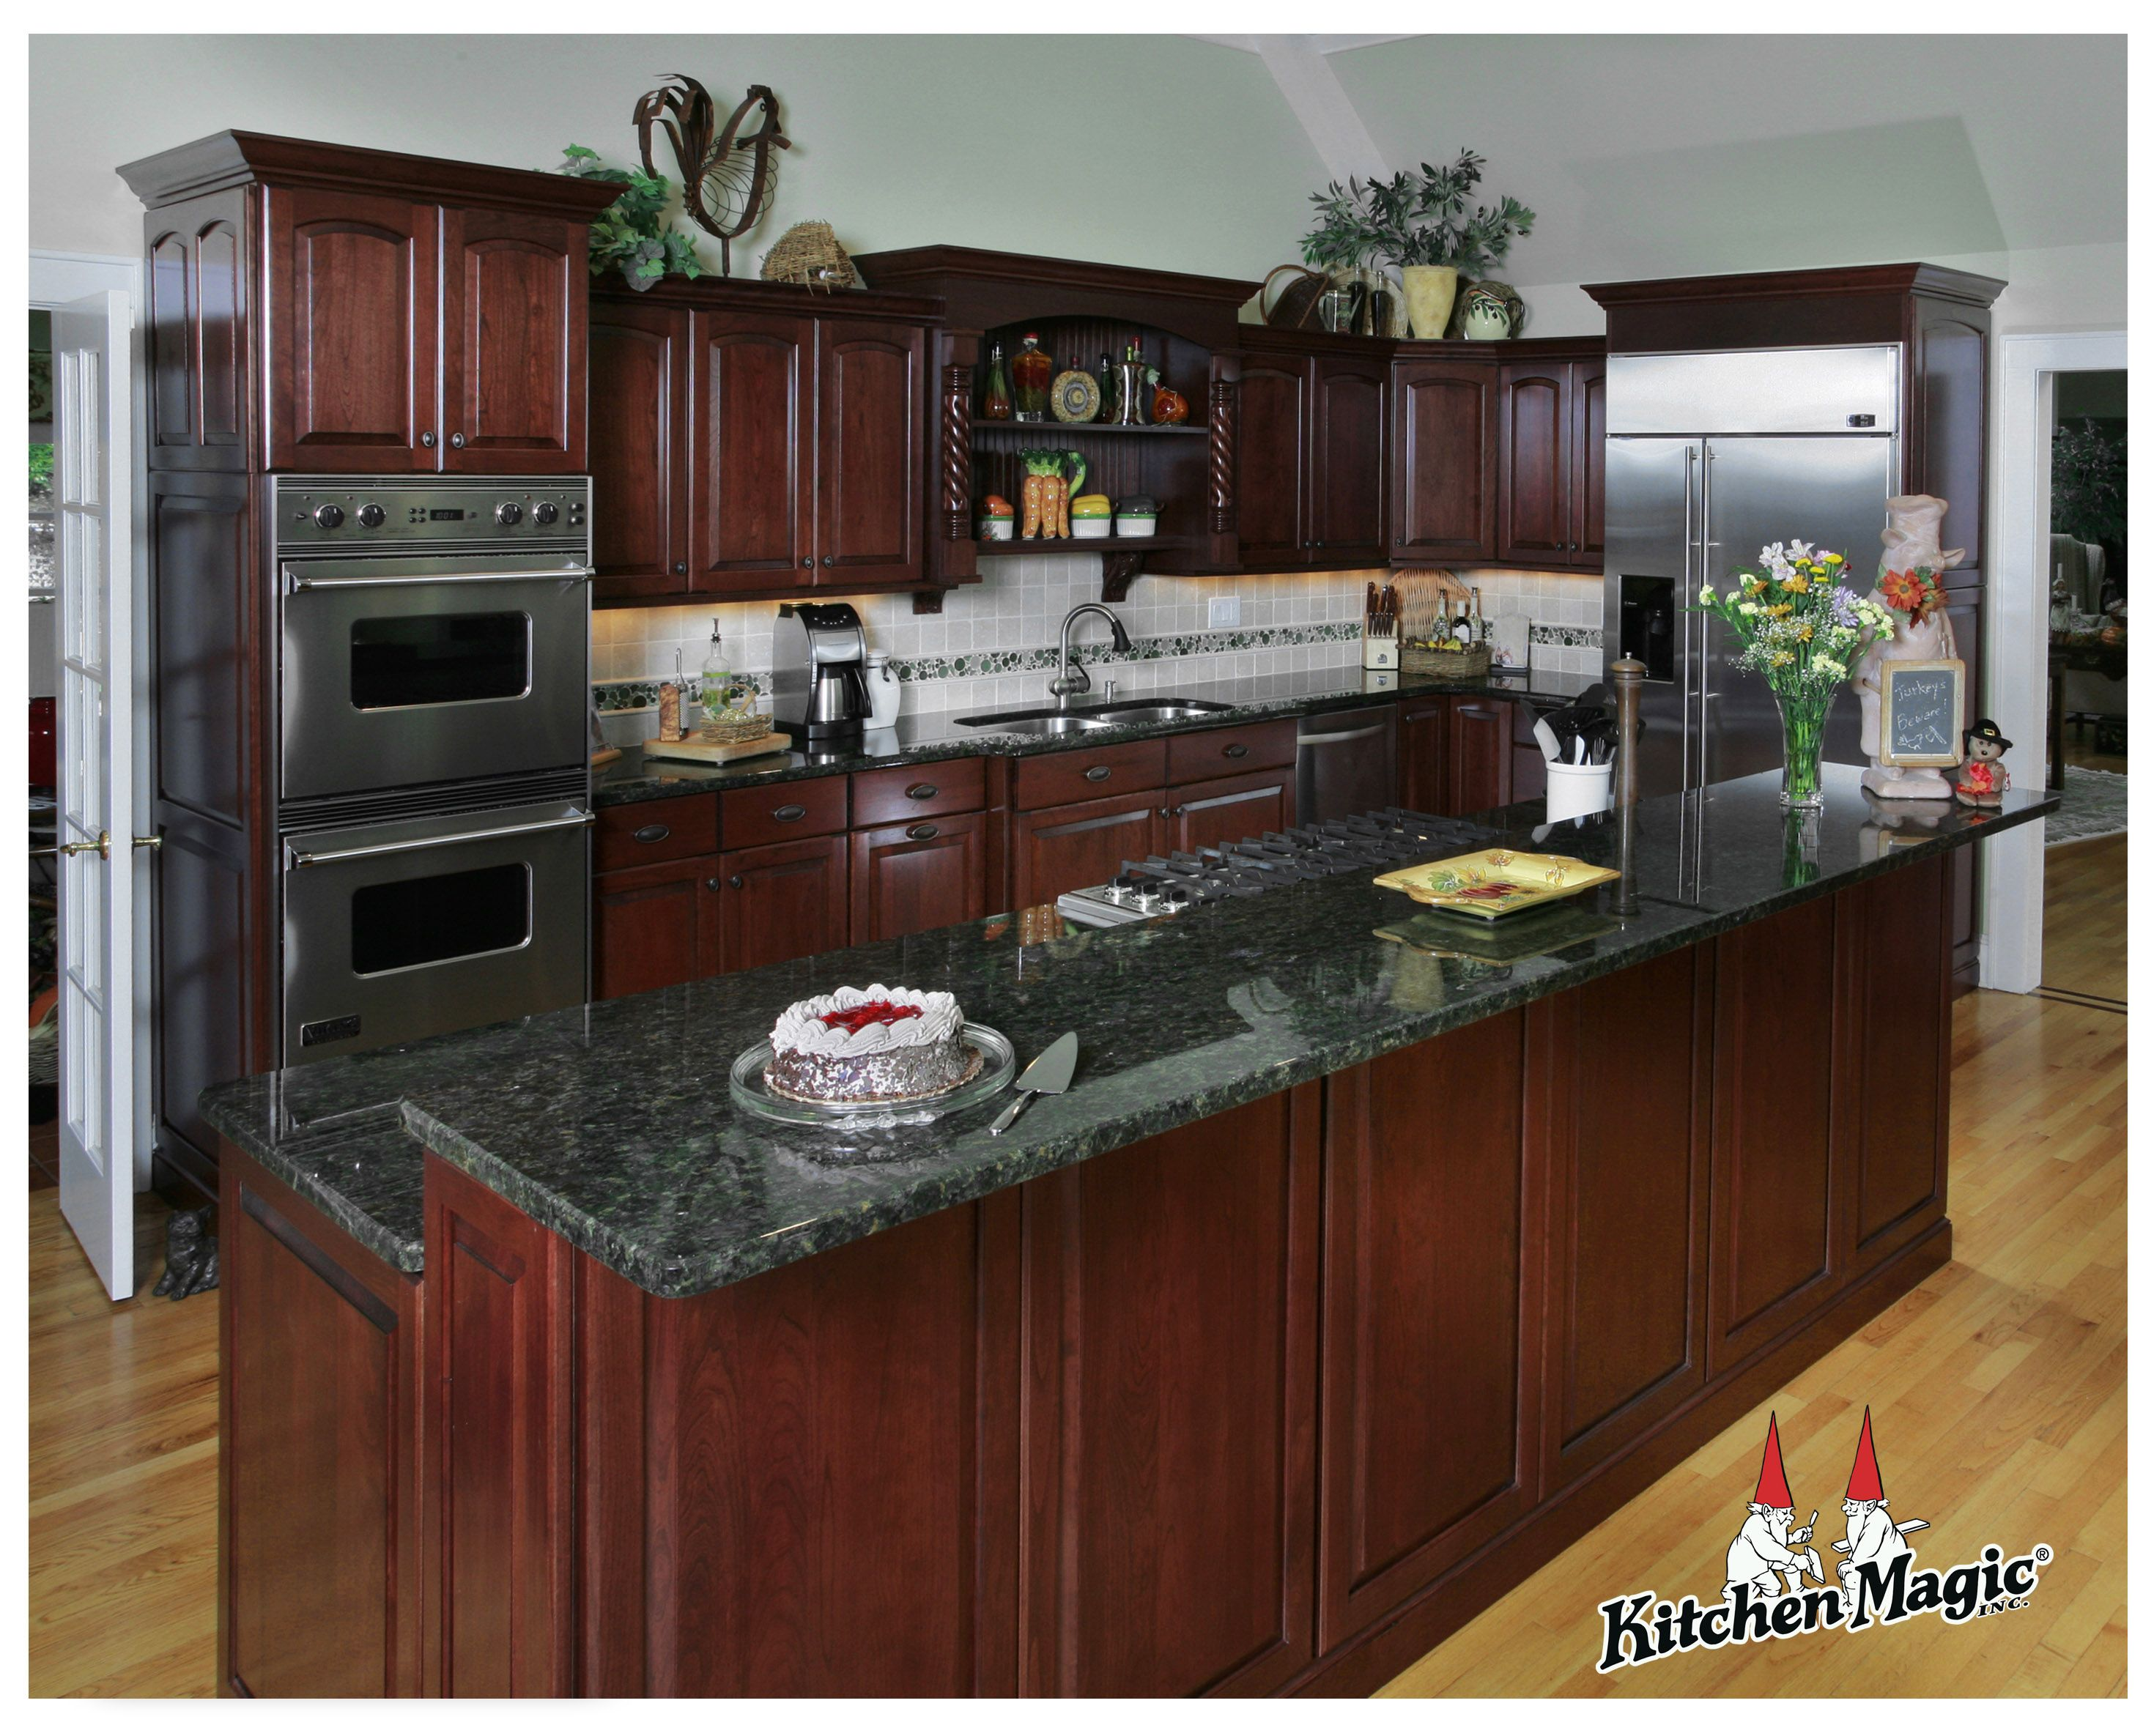 Cordovan Cherry Wood Cabinets.   Kitchen Magic, Inc.   This Is